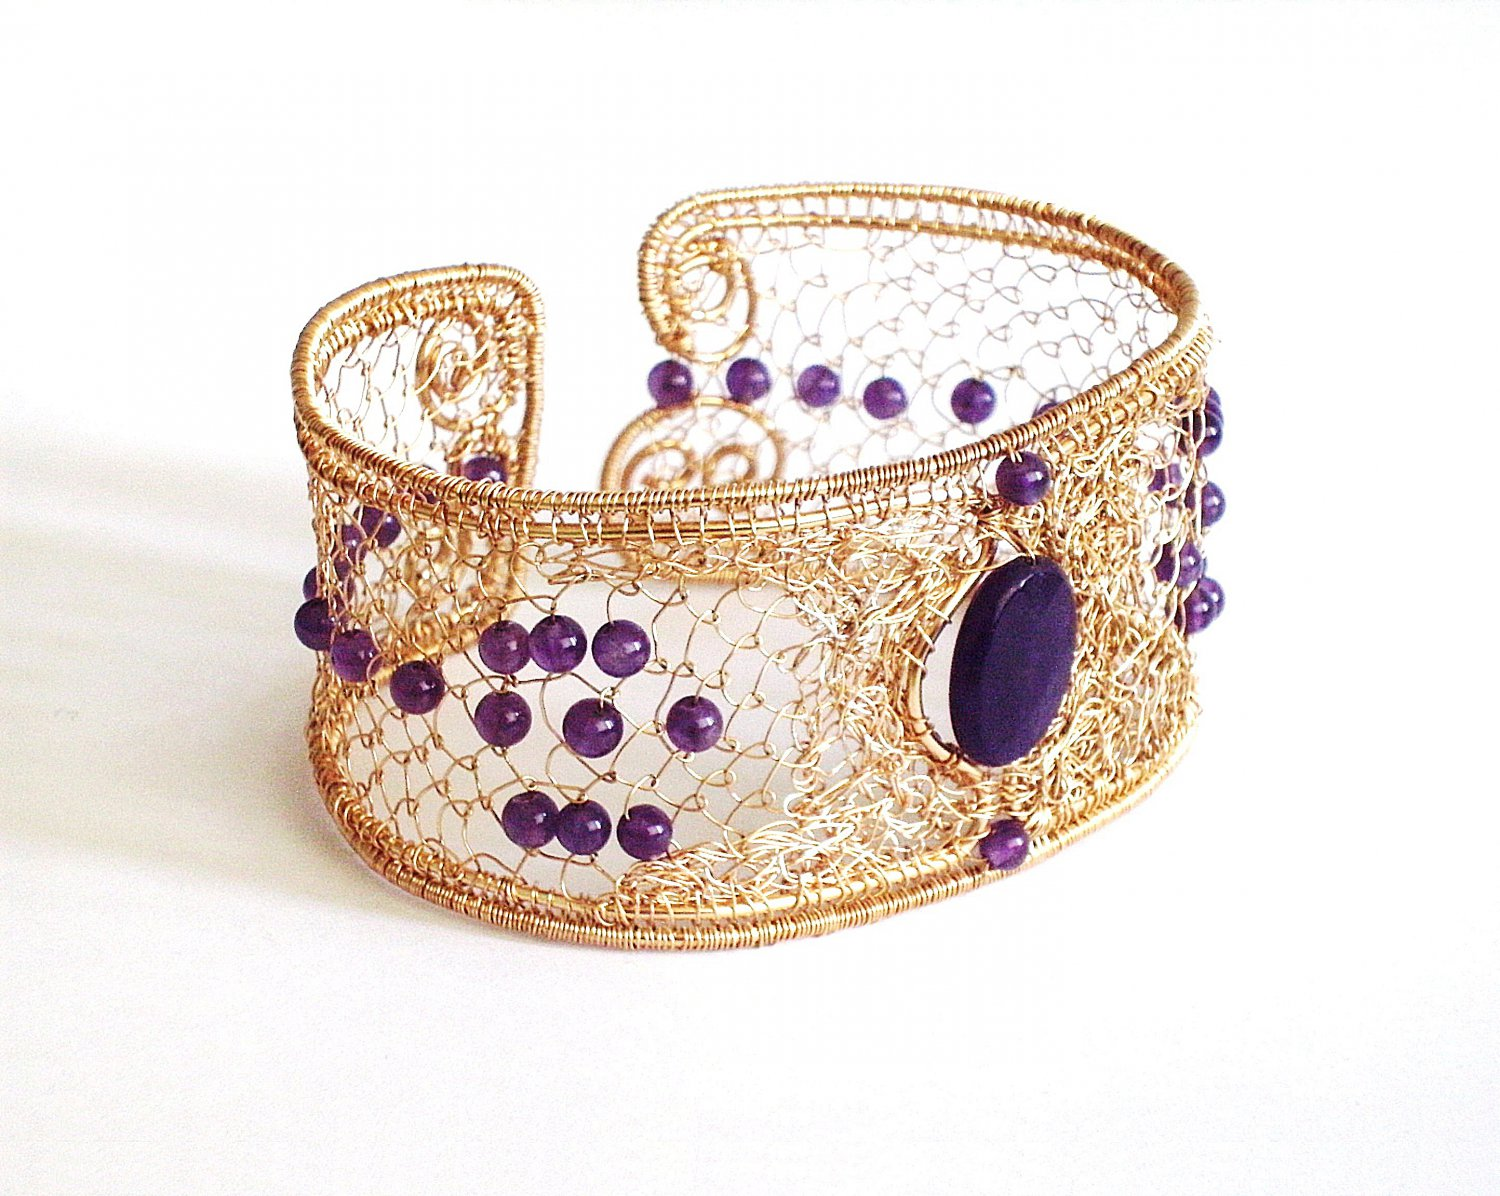 diy pdf tutorial Wire Wrapping Jewelry Filigree Amethyst Bangle,gift,crochet,amulet,pattern